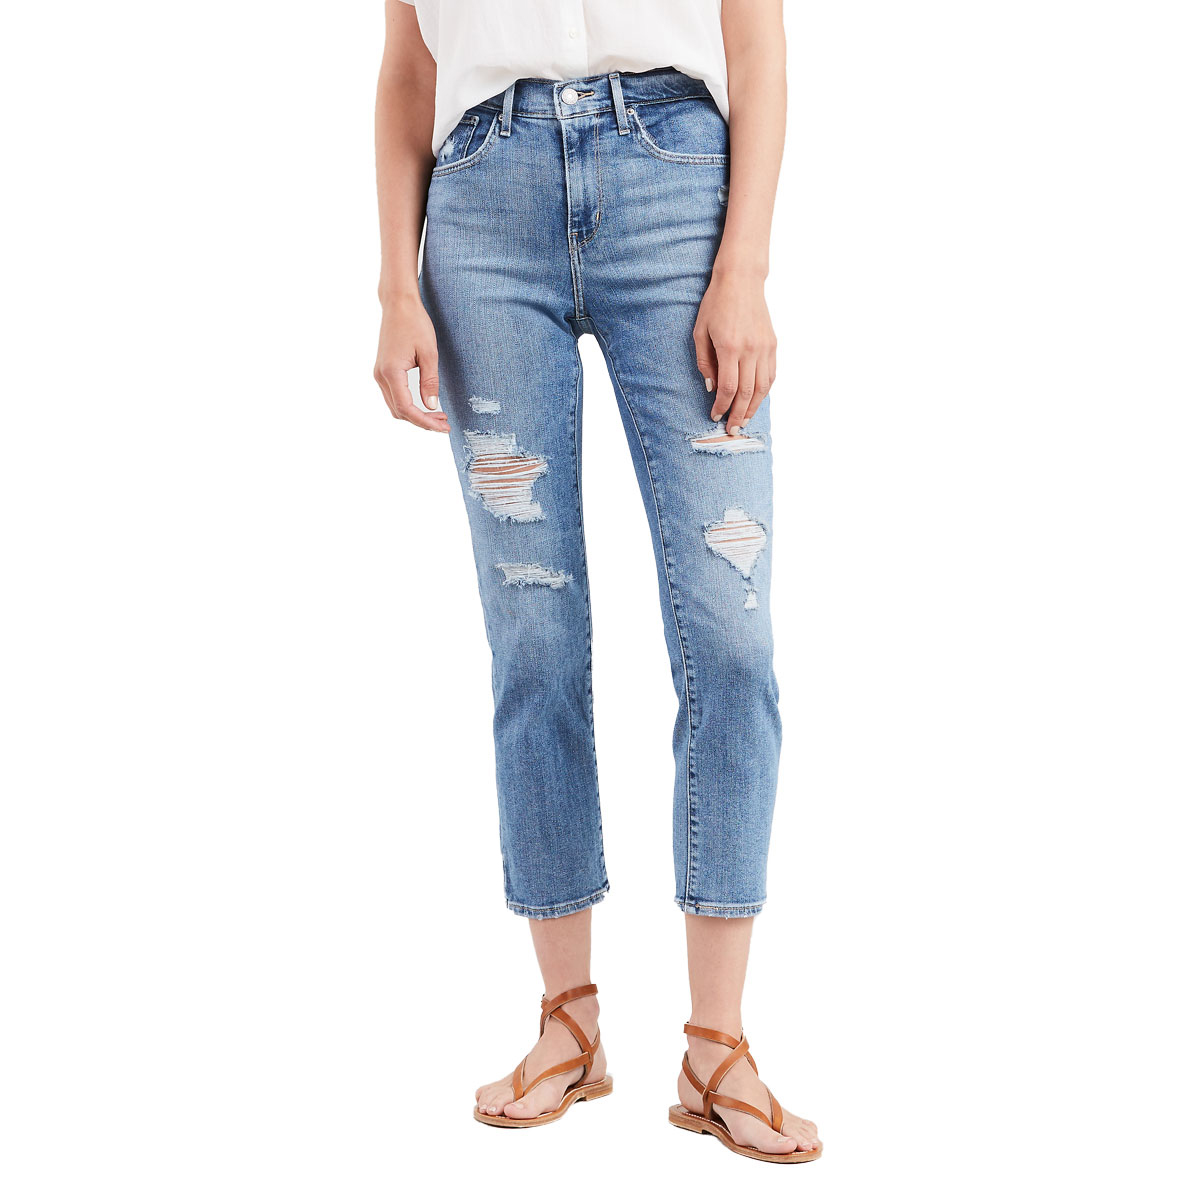 Levi's Women's 724 High Rise Straight Crop Denim Jean